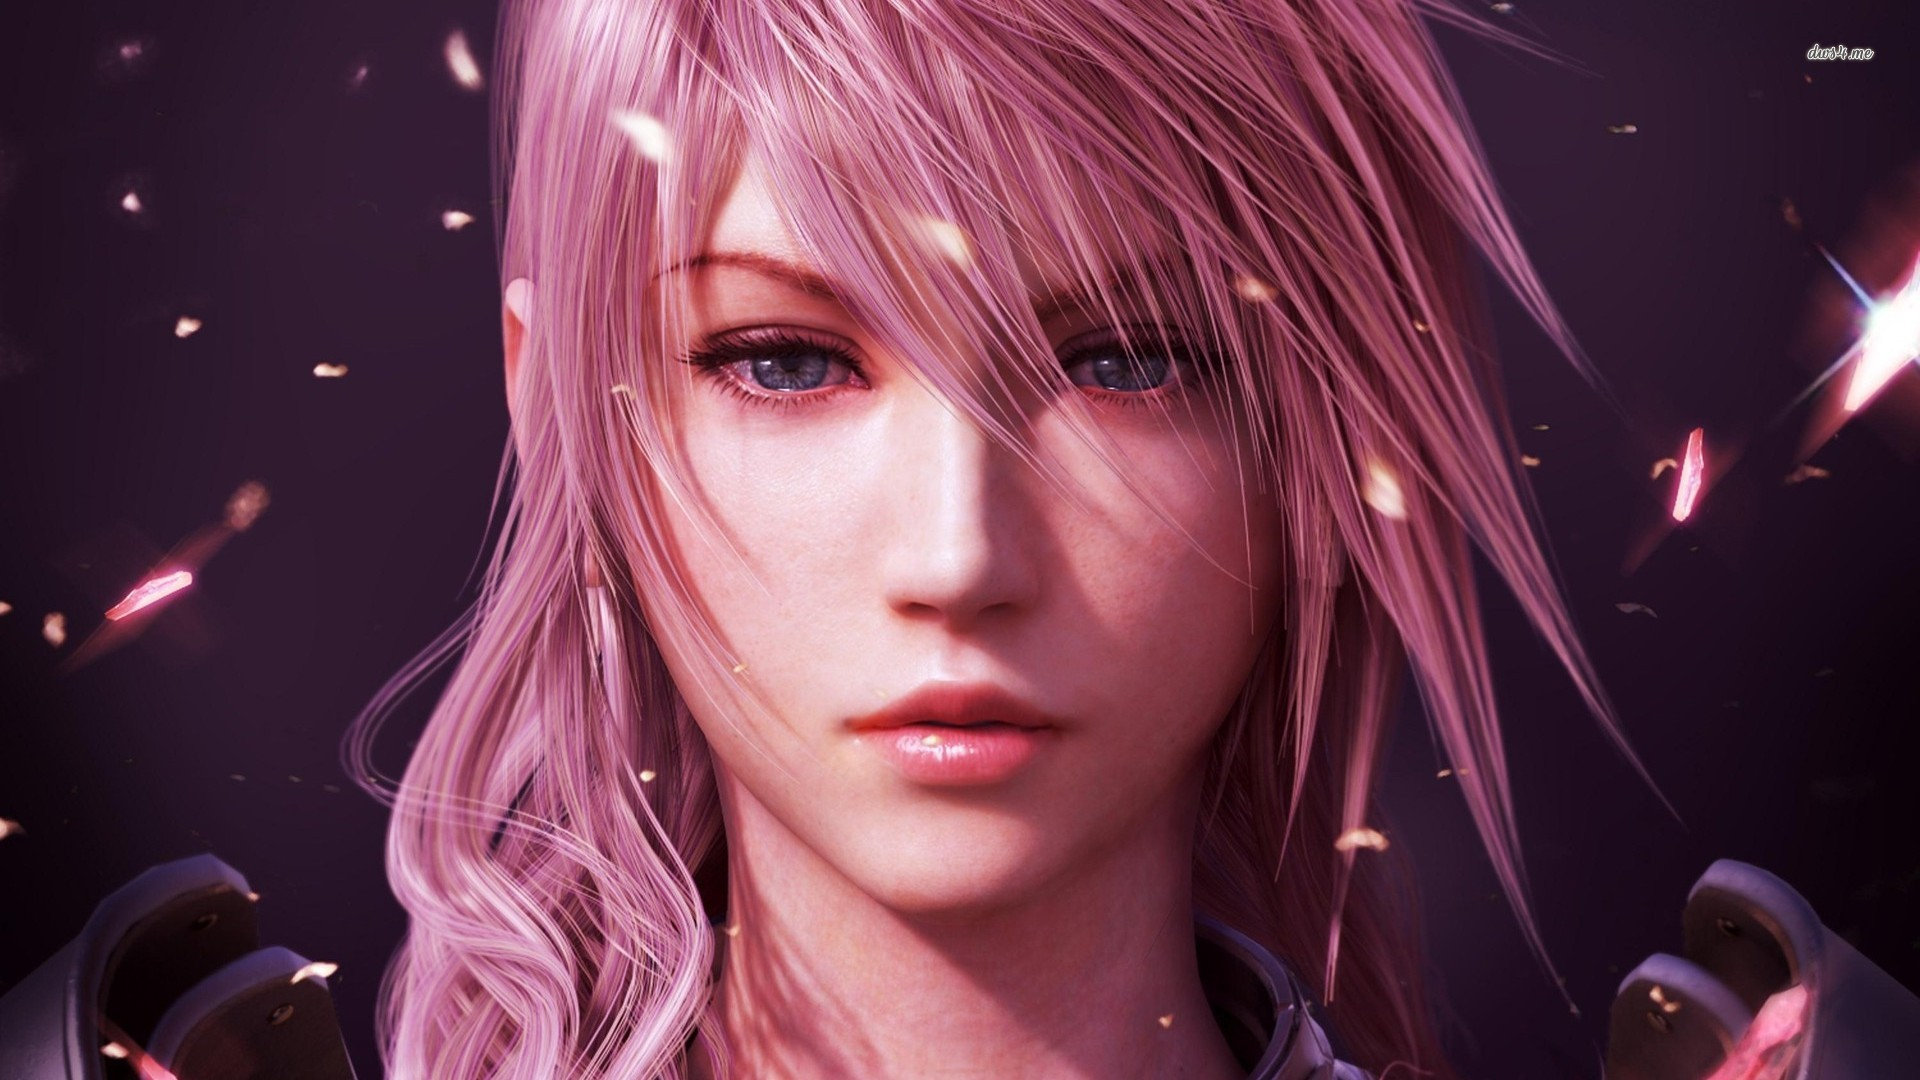 Lightning Final Fantasy Xiii Wallpaper 1920x1080 Full HD Wallpapers 1920x1080